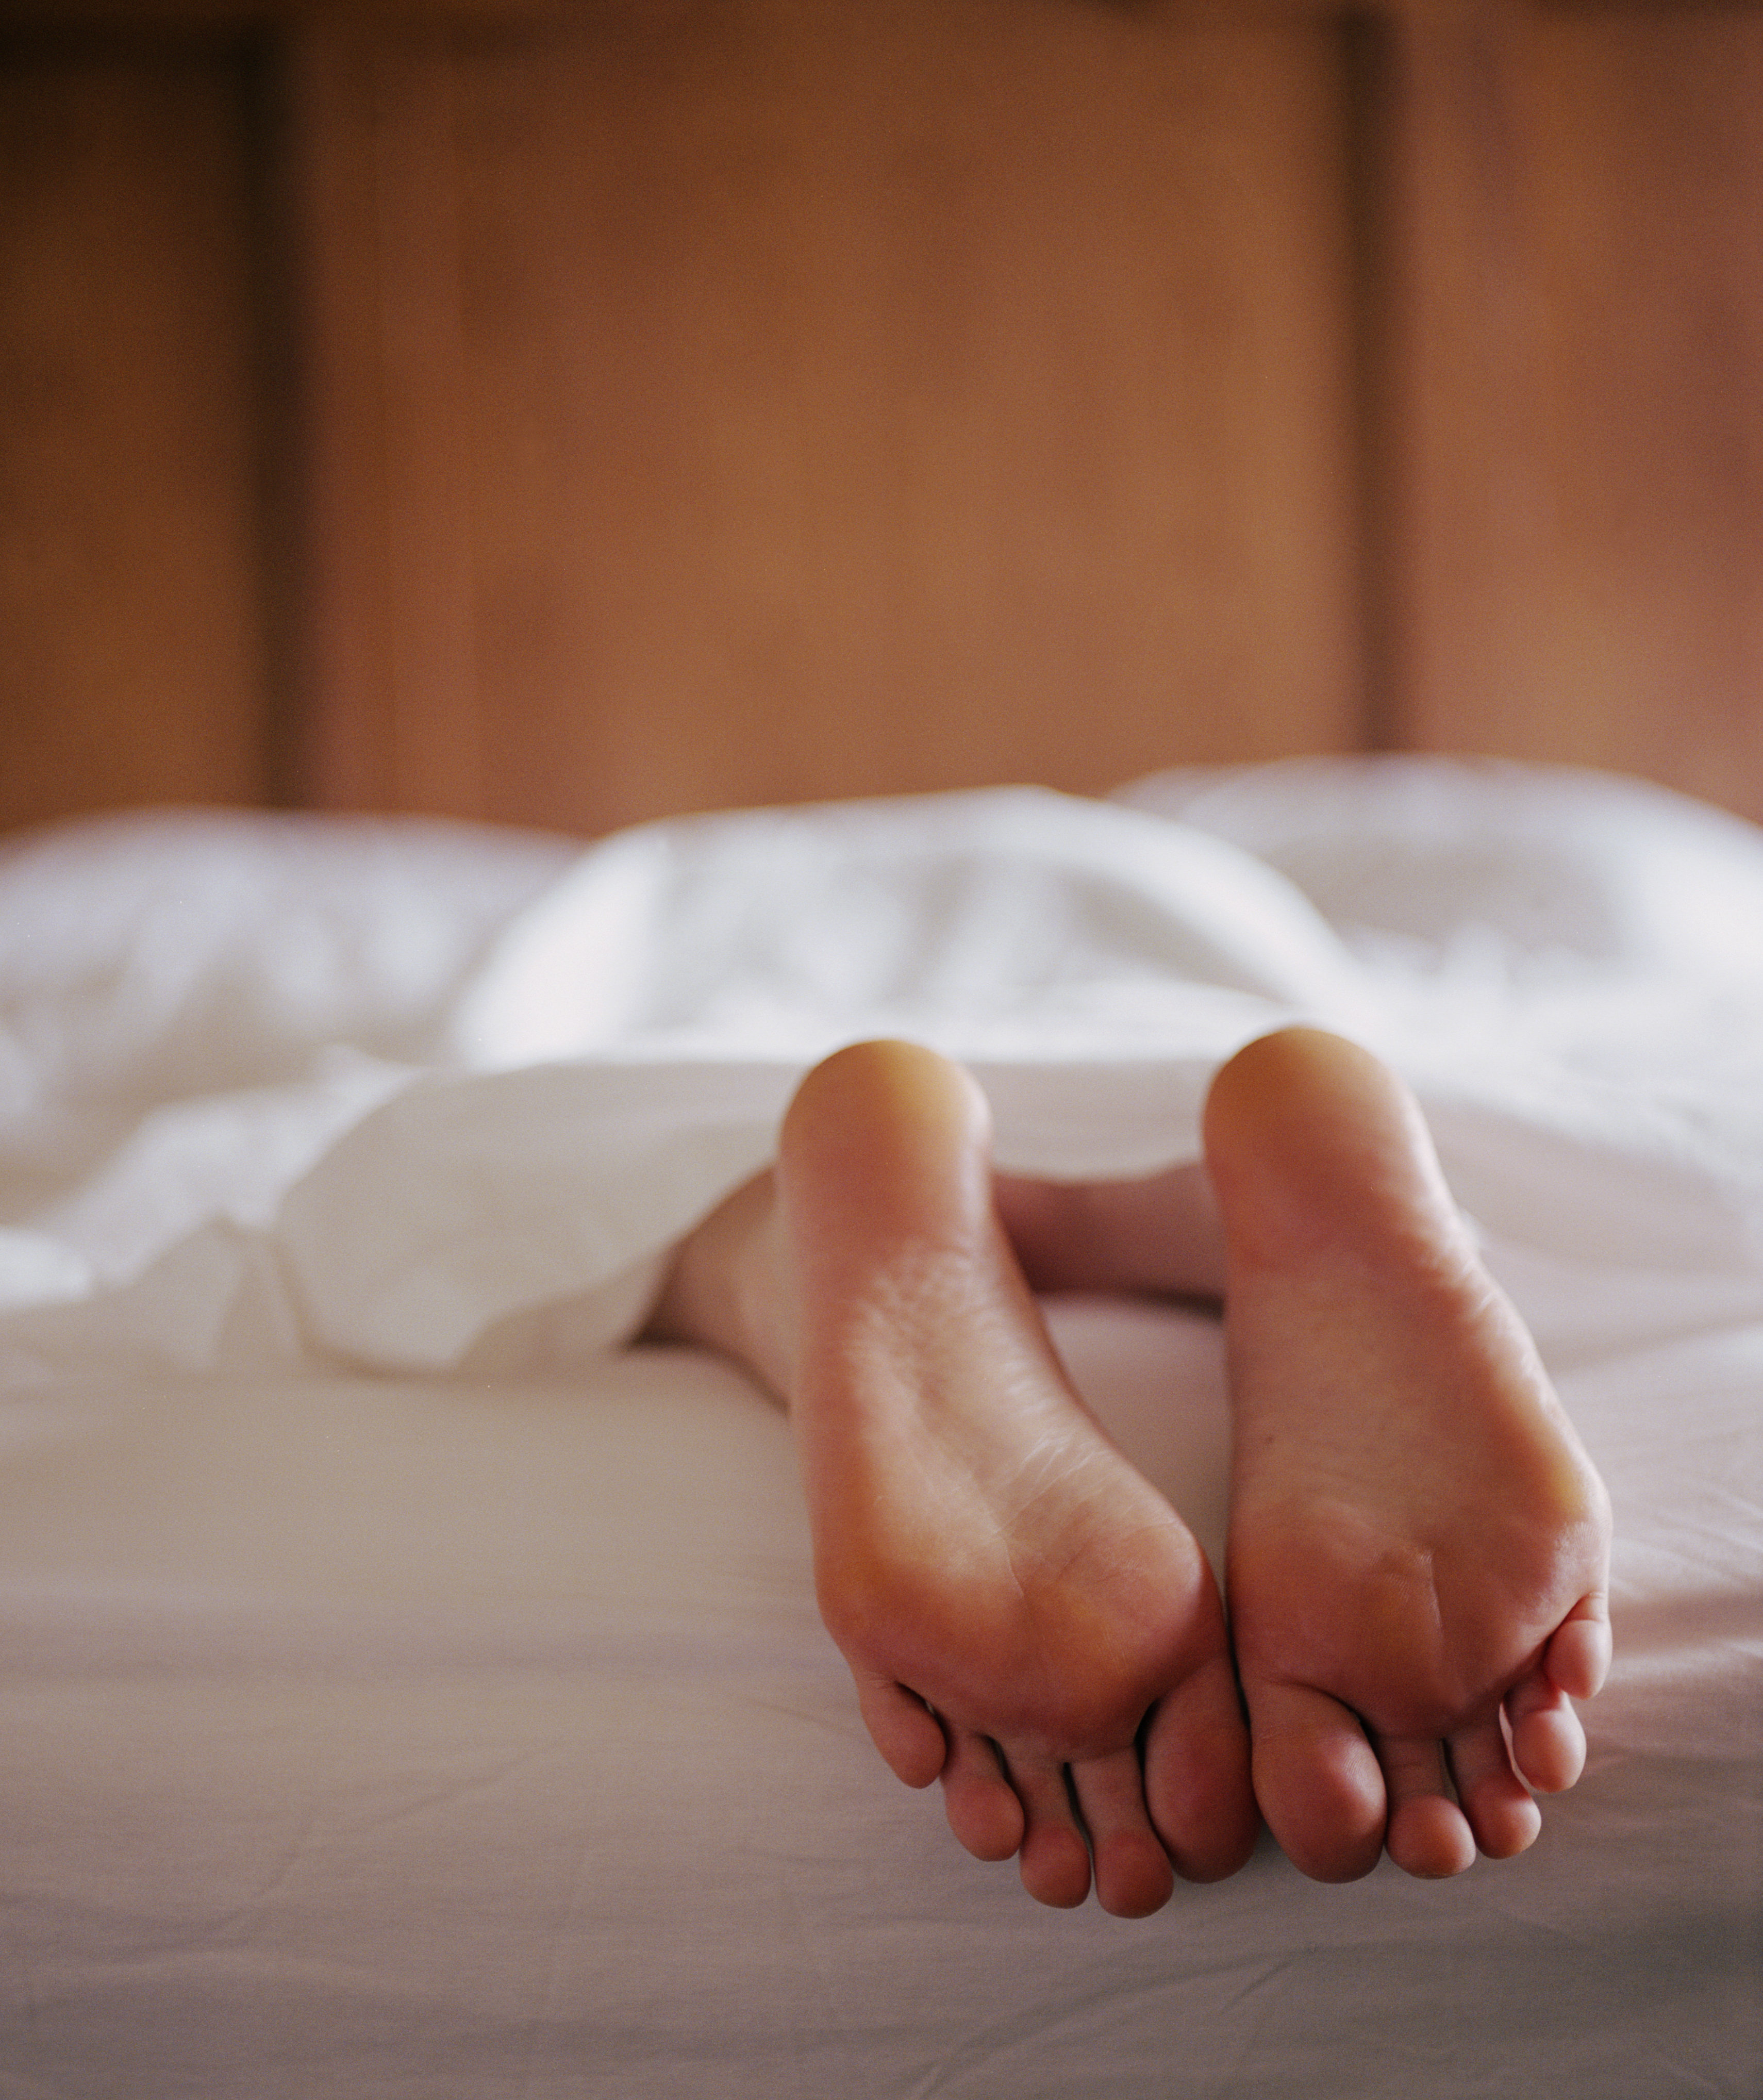 woman-foot-bed